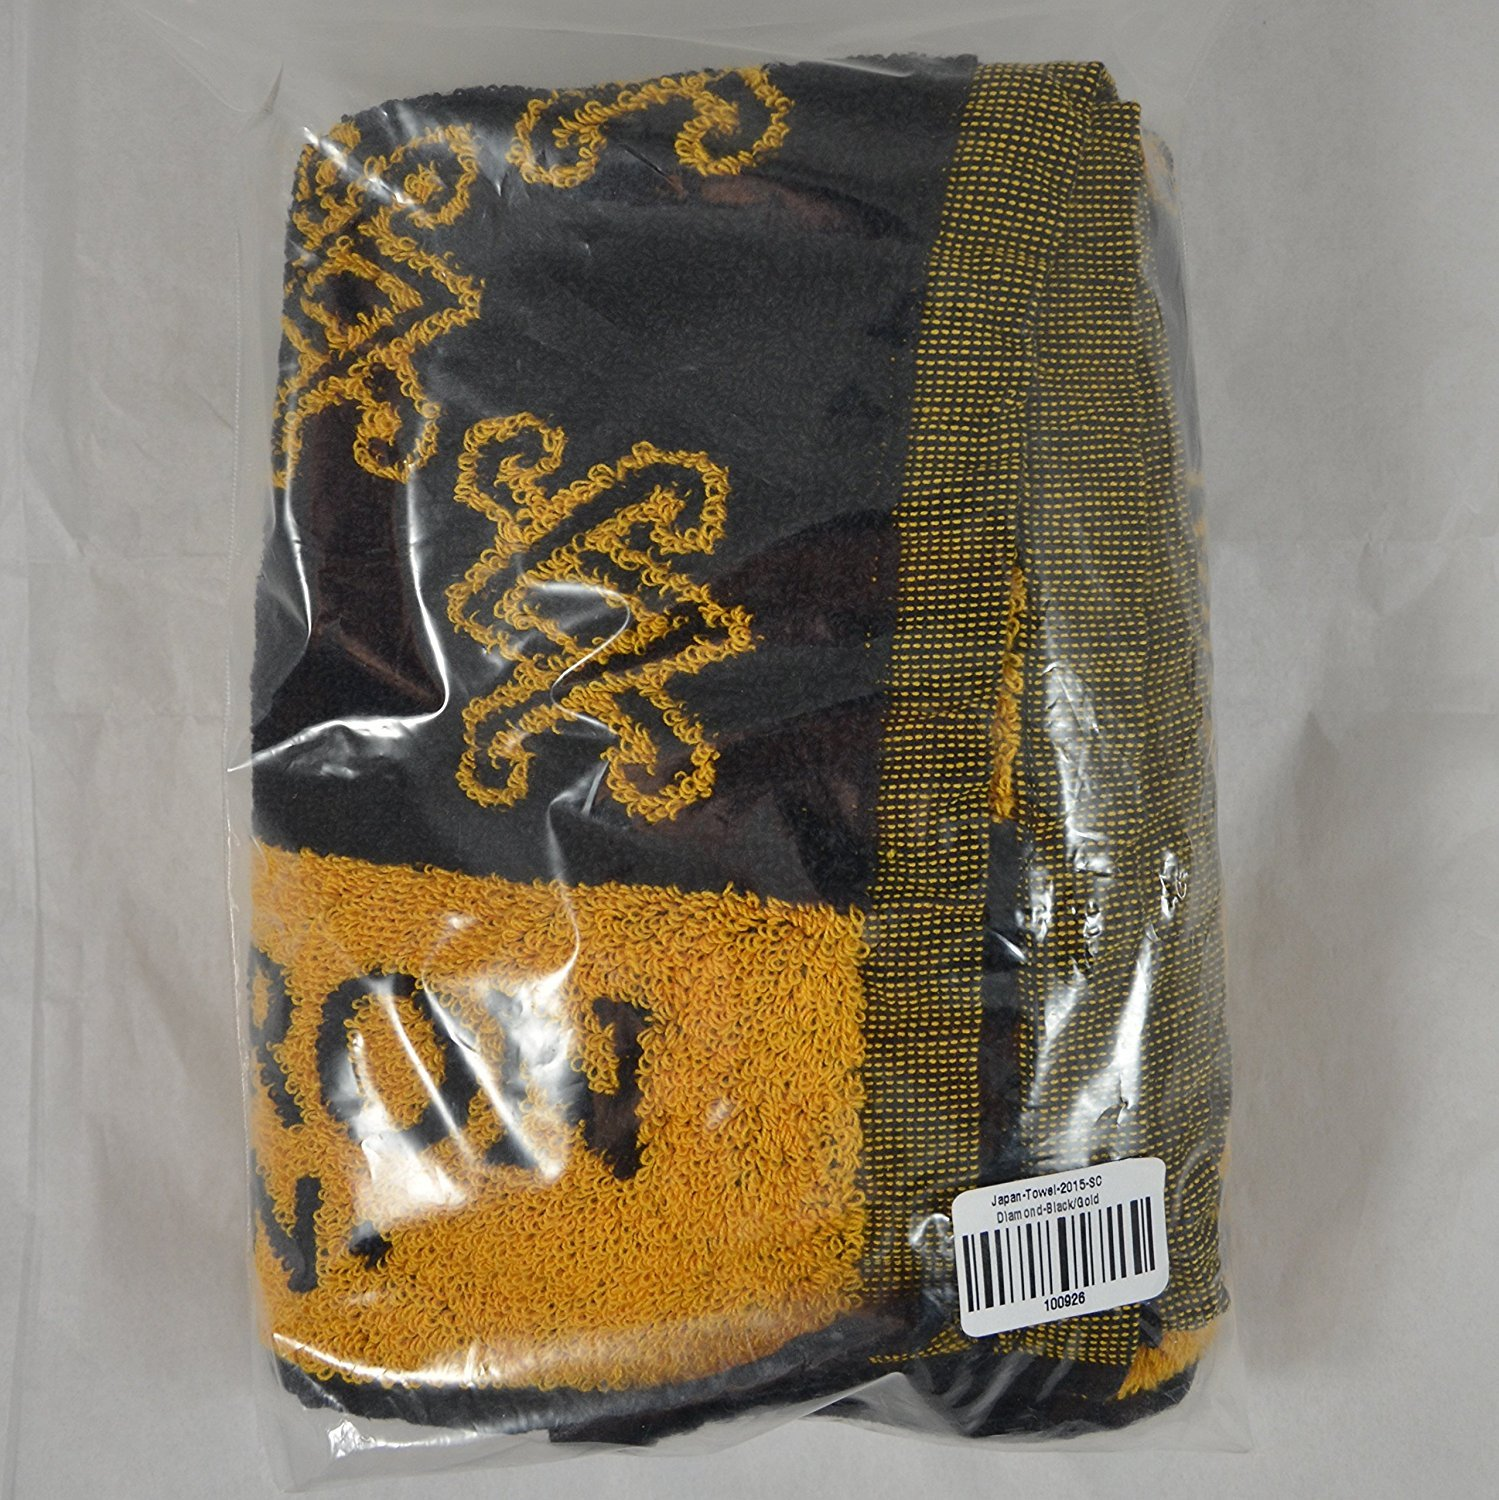 Scotty Cameron Golf Towel Limited SC Diamond Patterned Black & Gold 37'' x 20'' by Scotty Cameron